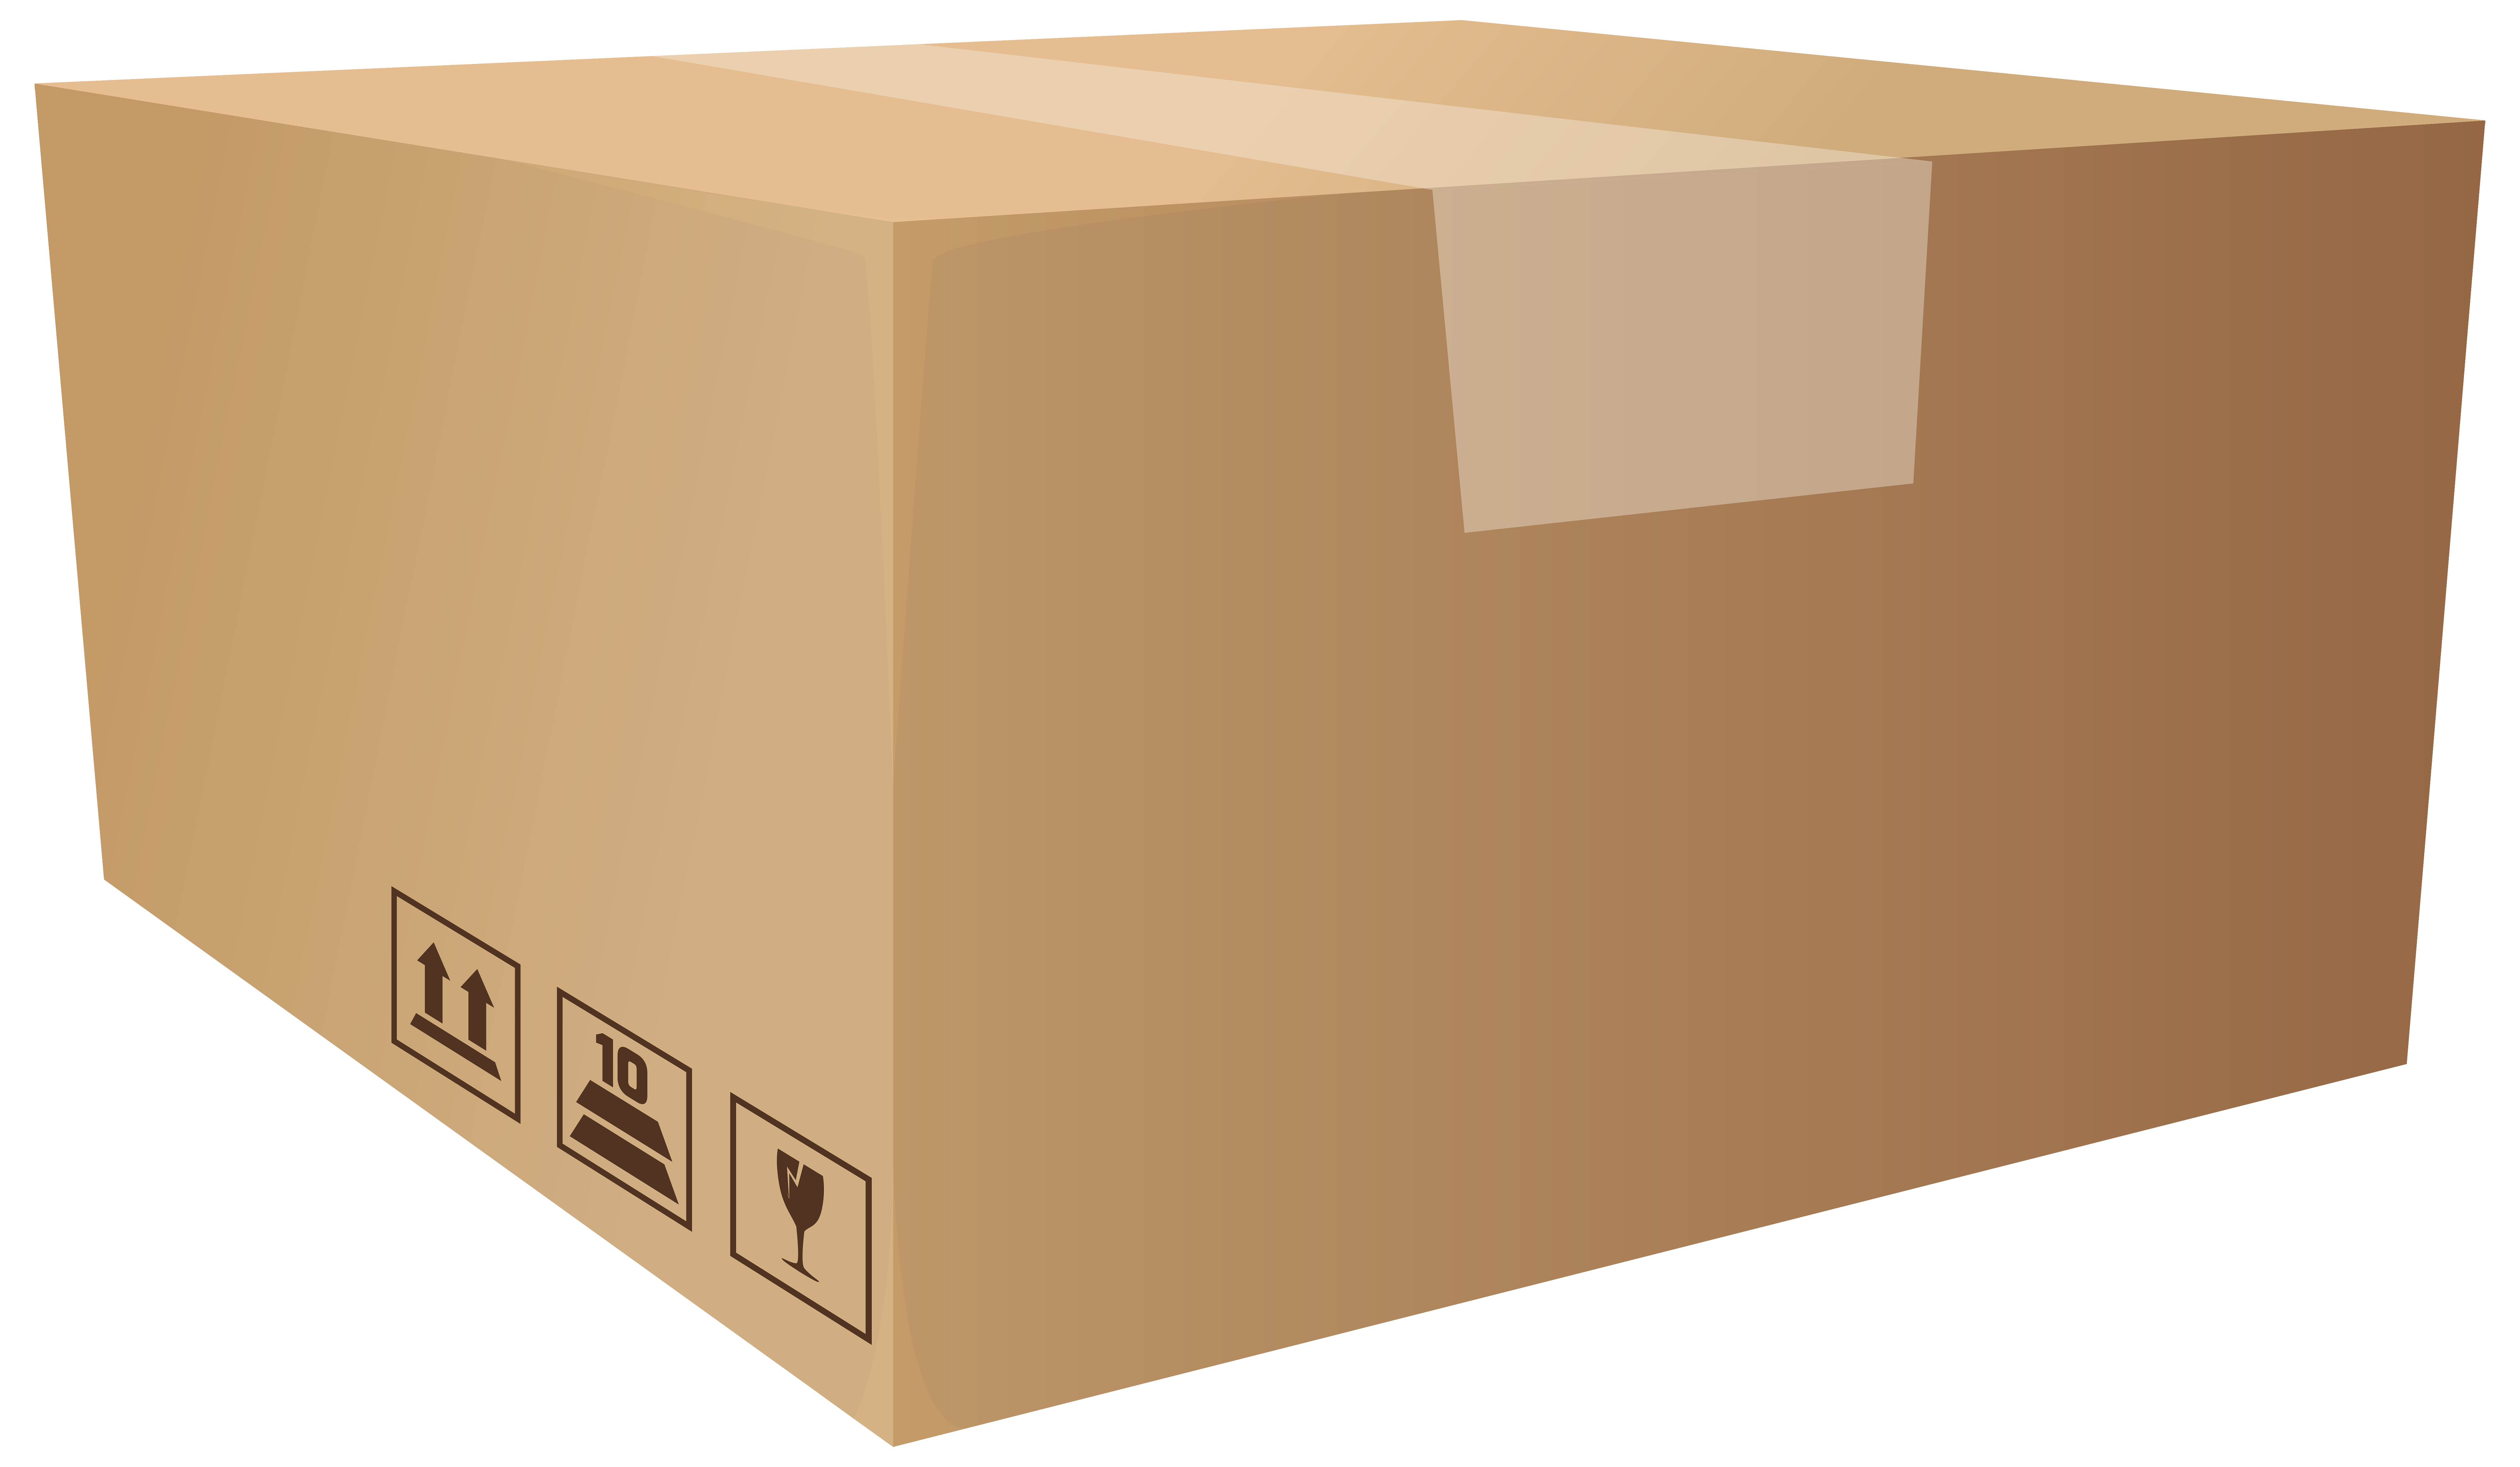 Box png clip art. Boxes clipart packaging